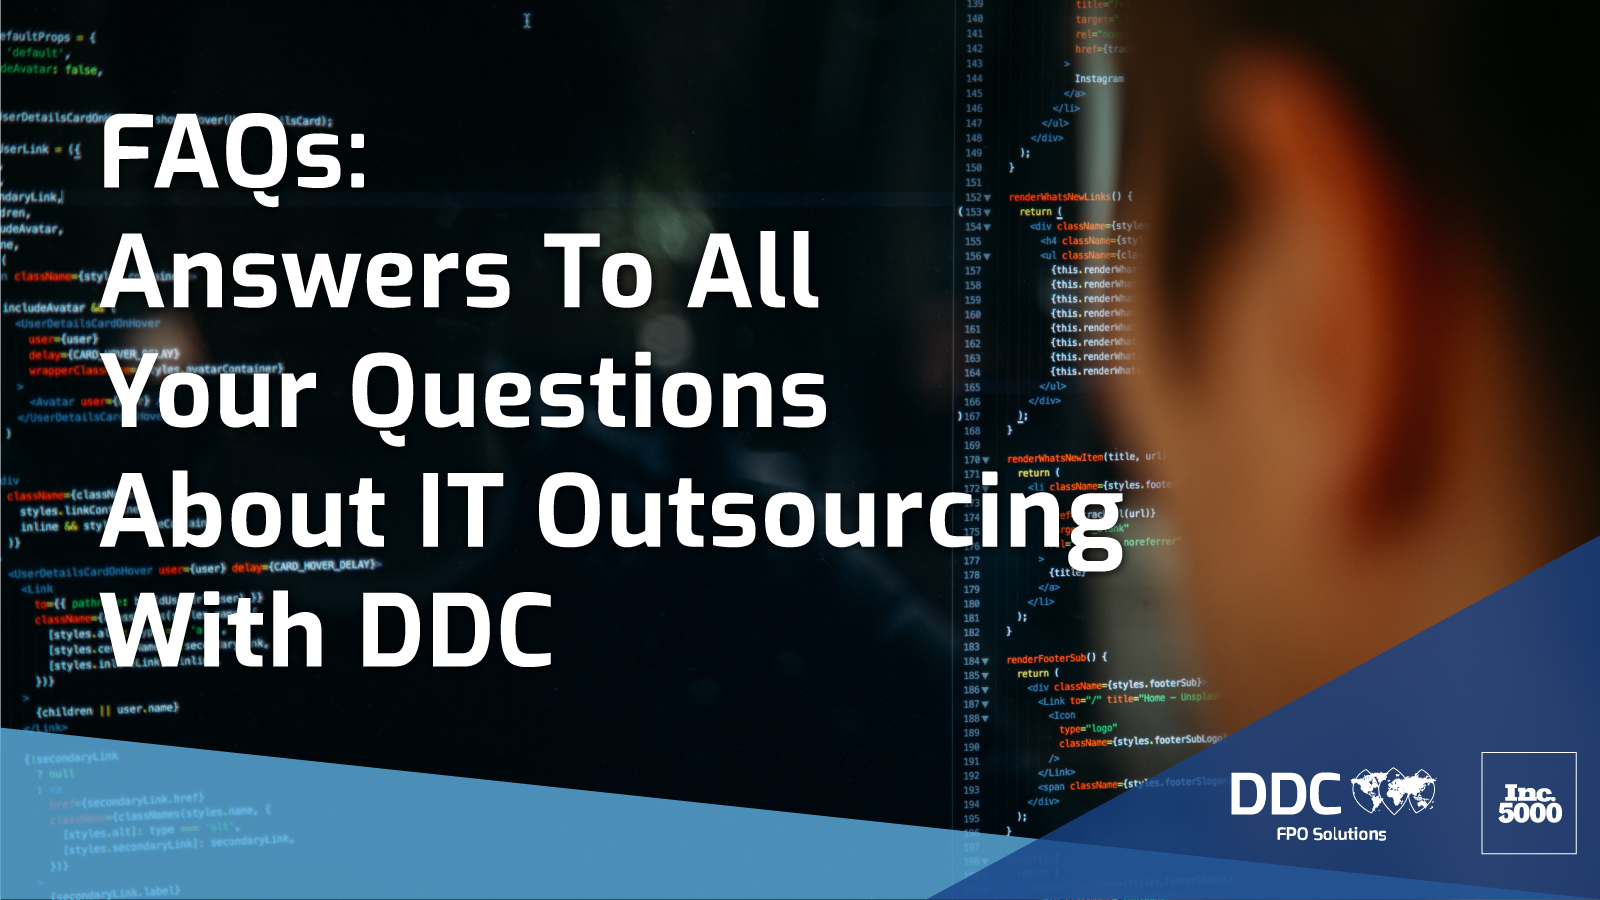 FAQs: Answers To All Your Questions About IT Outsourcing With DDC